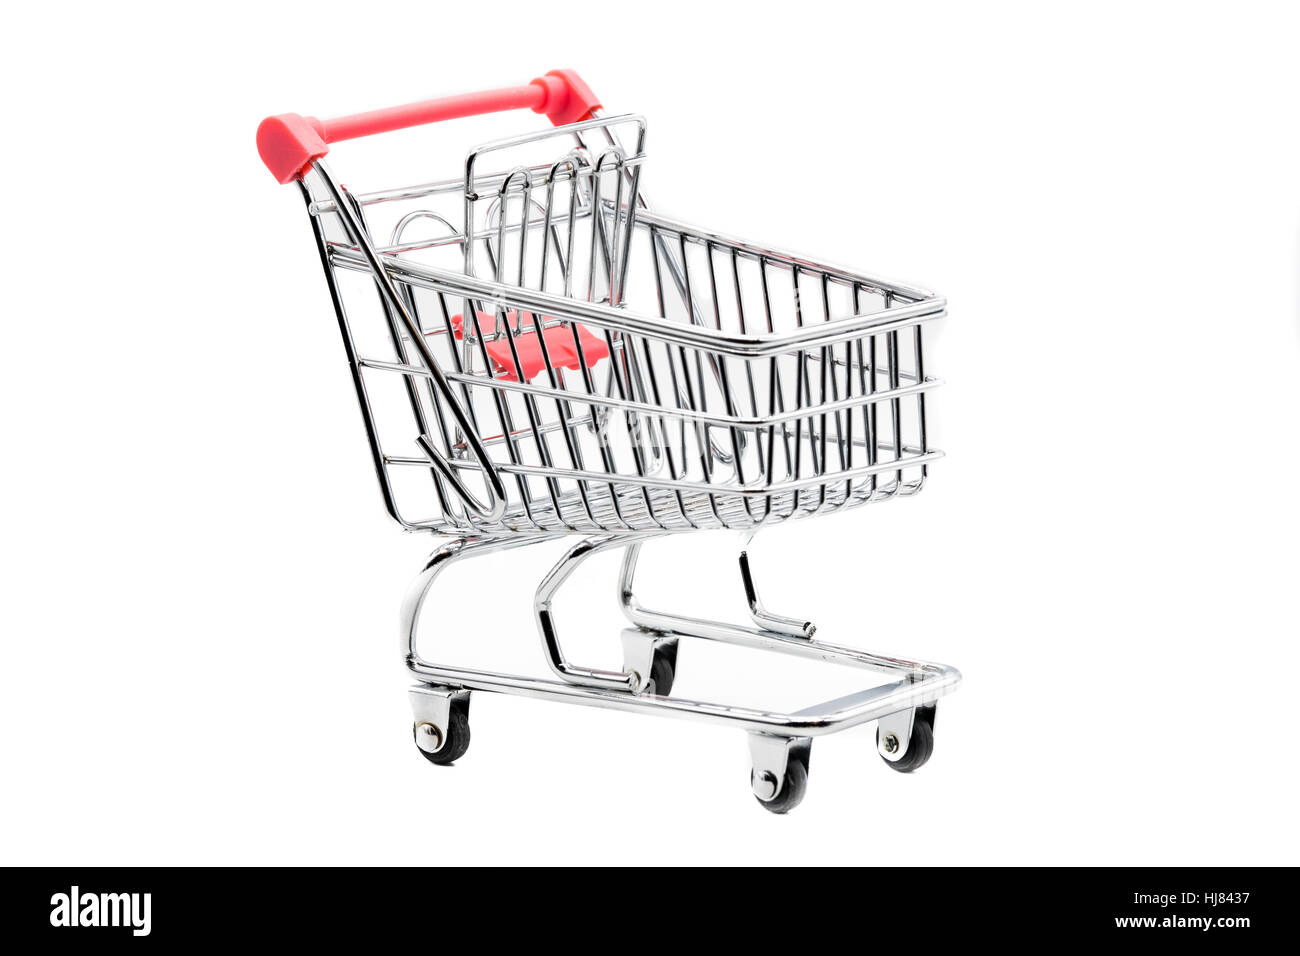 Empty shopping trolley isolated on white - Stock Image